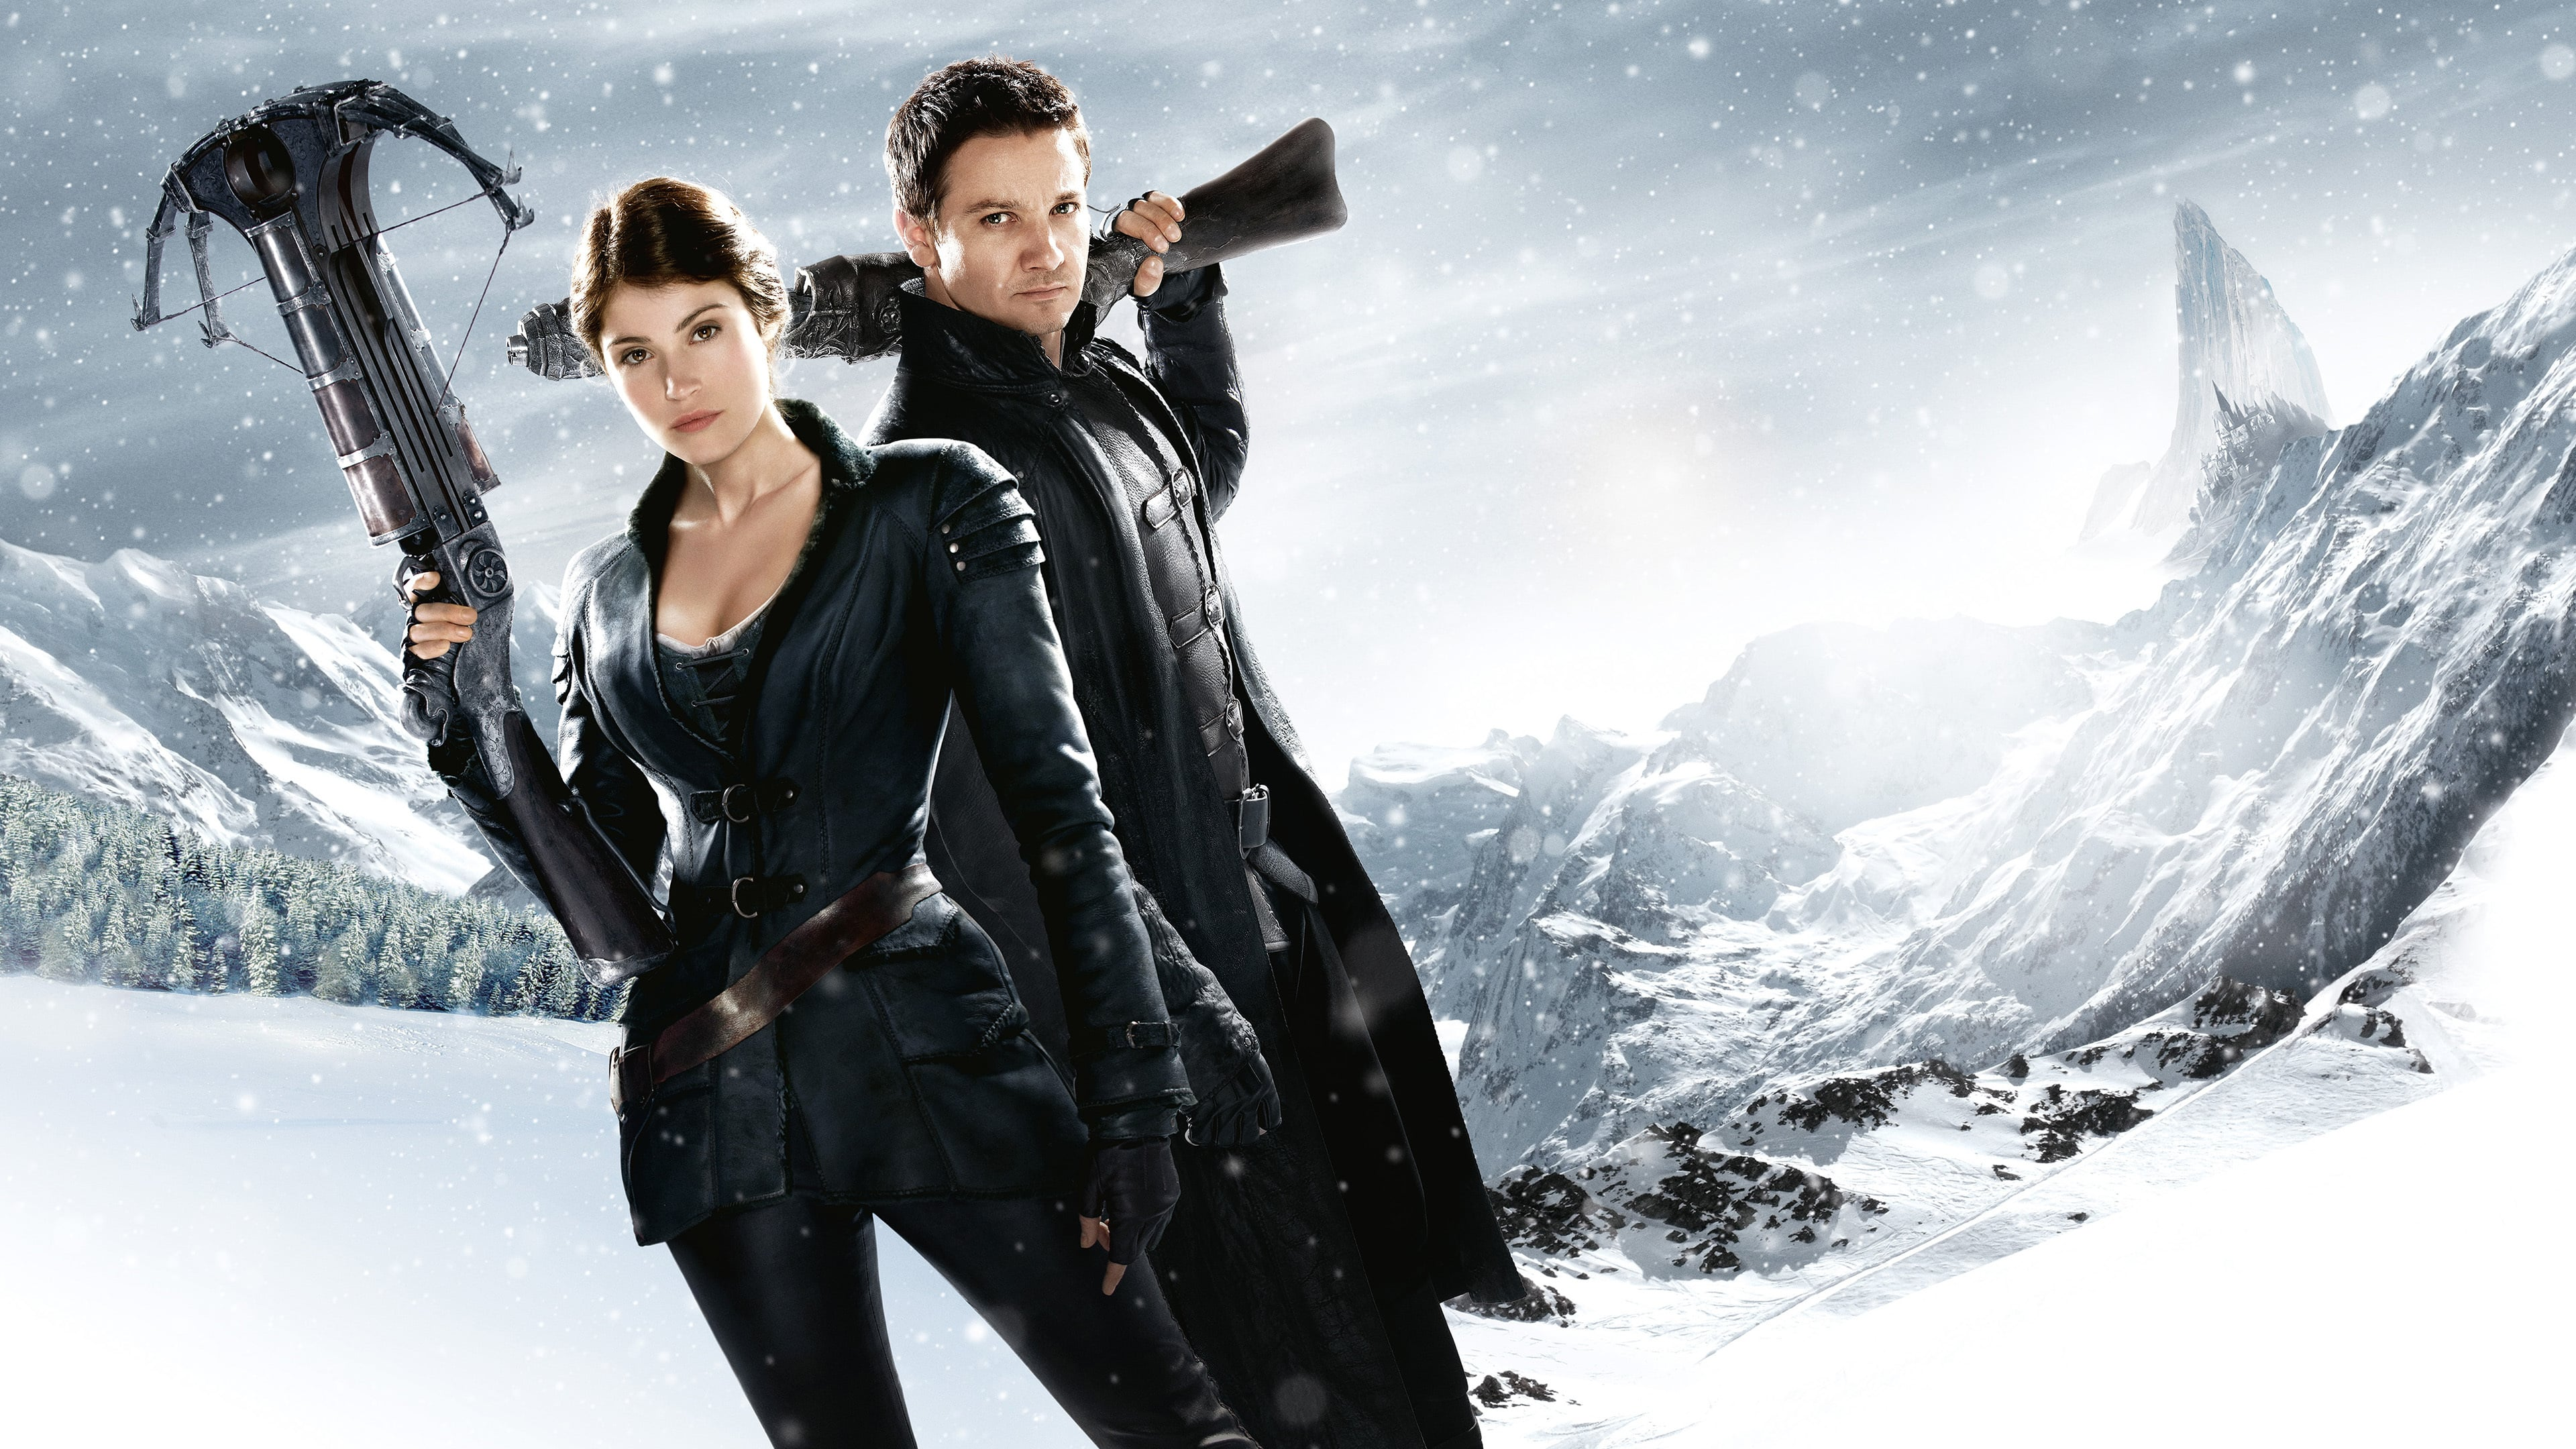 hansel and gretel witch hunters 4k 1541719450 - Hansel And Gretel Witch Hunters 4k - movies wallpapers, hd-wallpapers, 4k-wallpapers